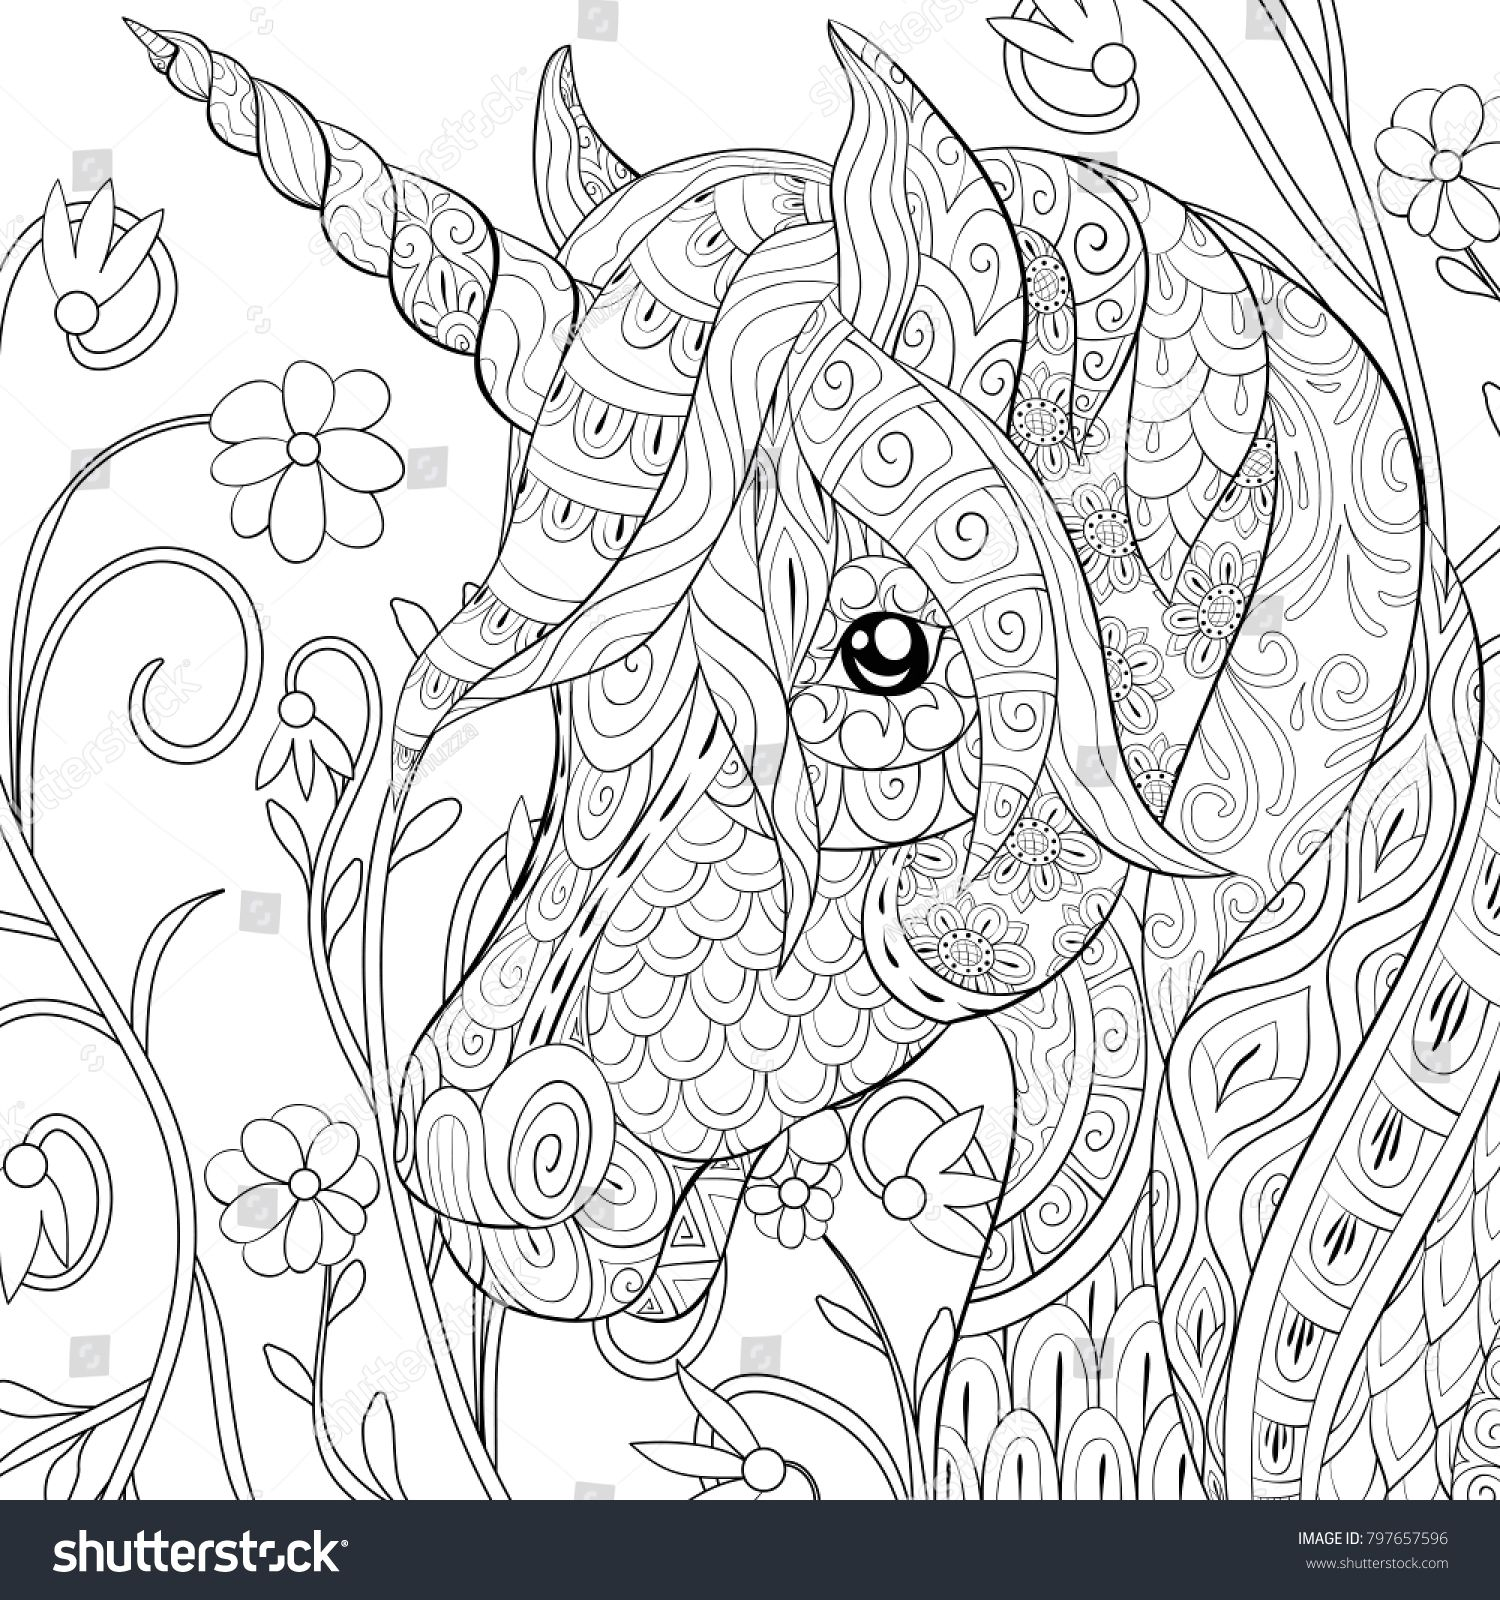 Adult coloring page,book a cute unicorn on the floral